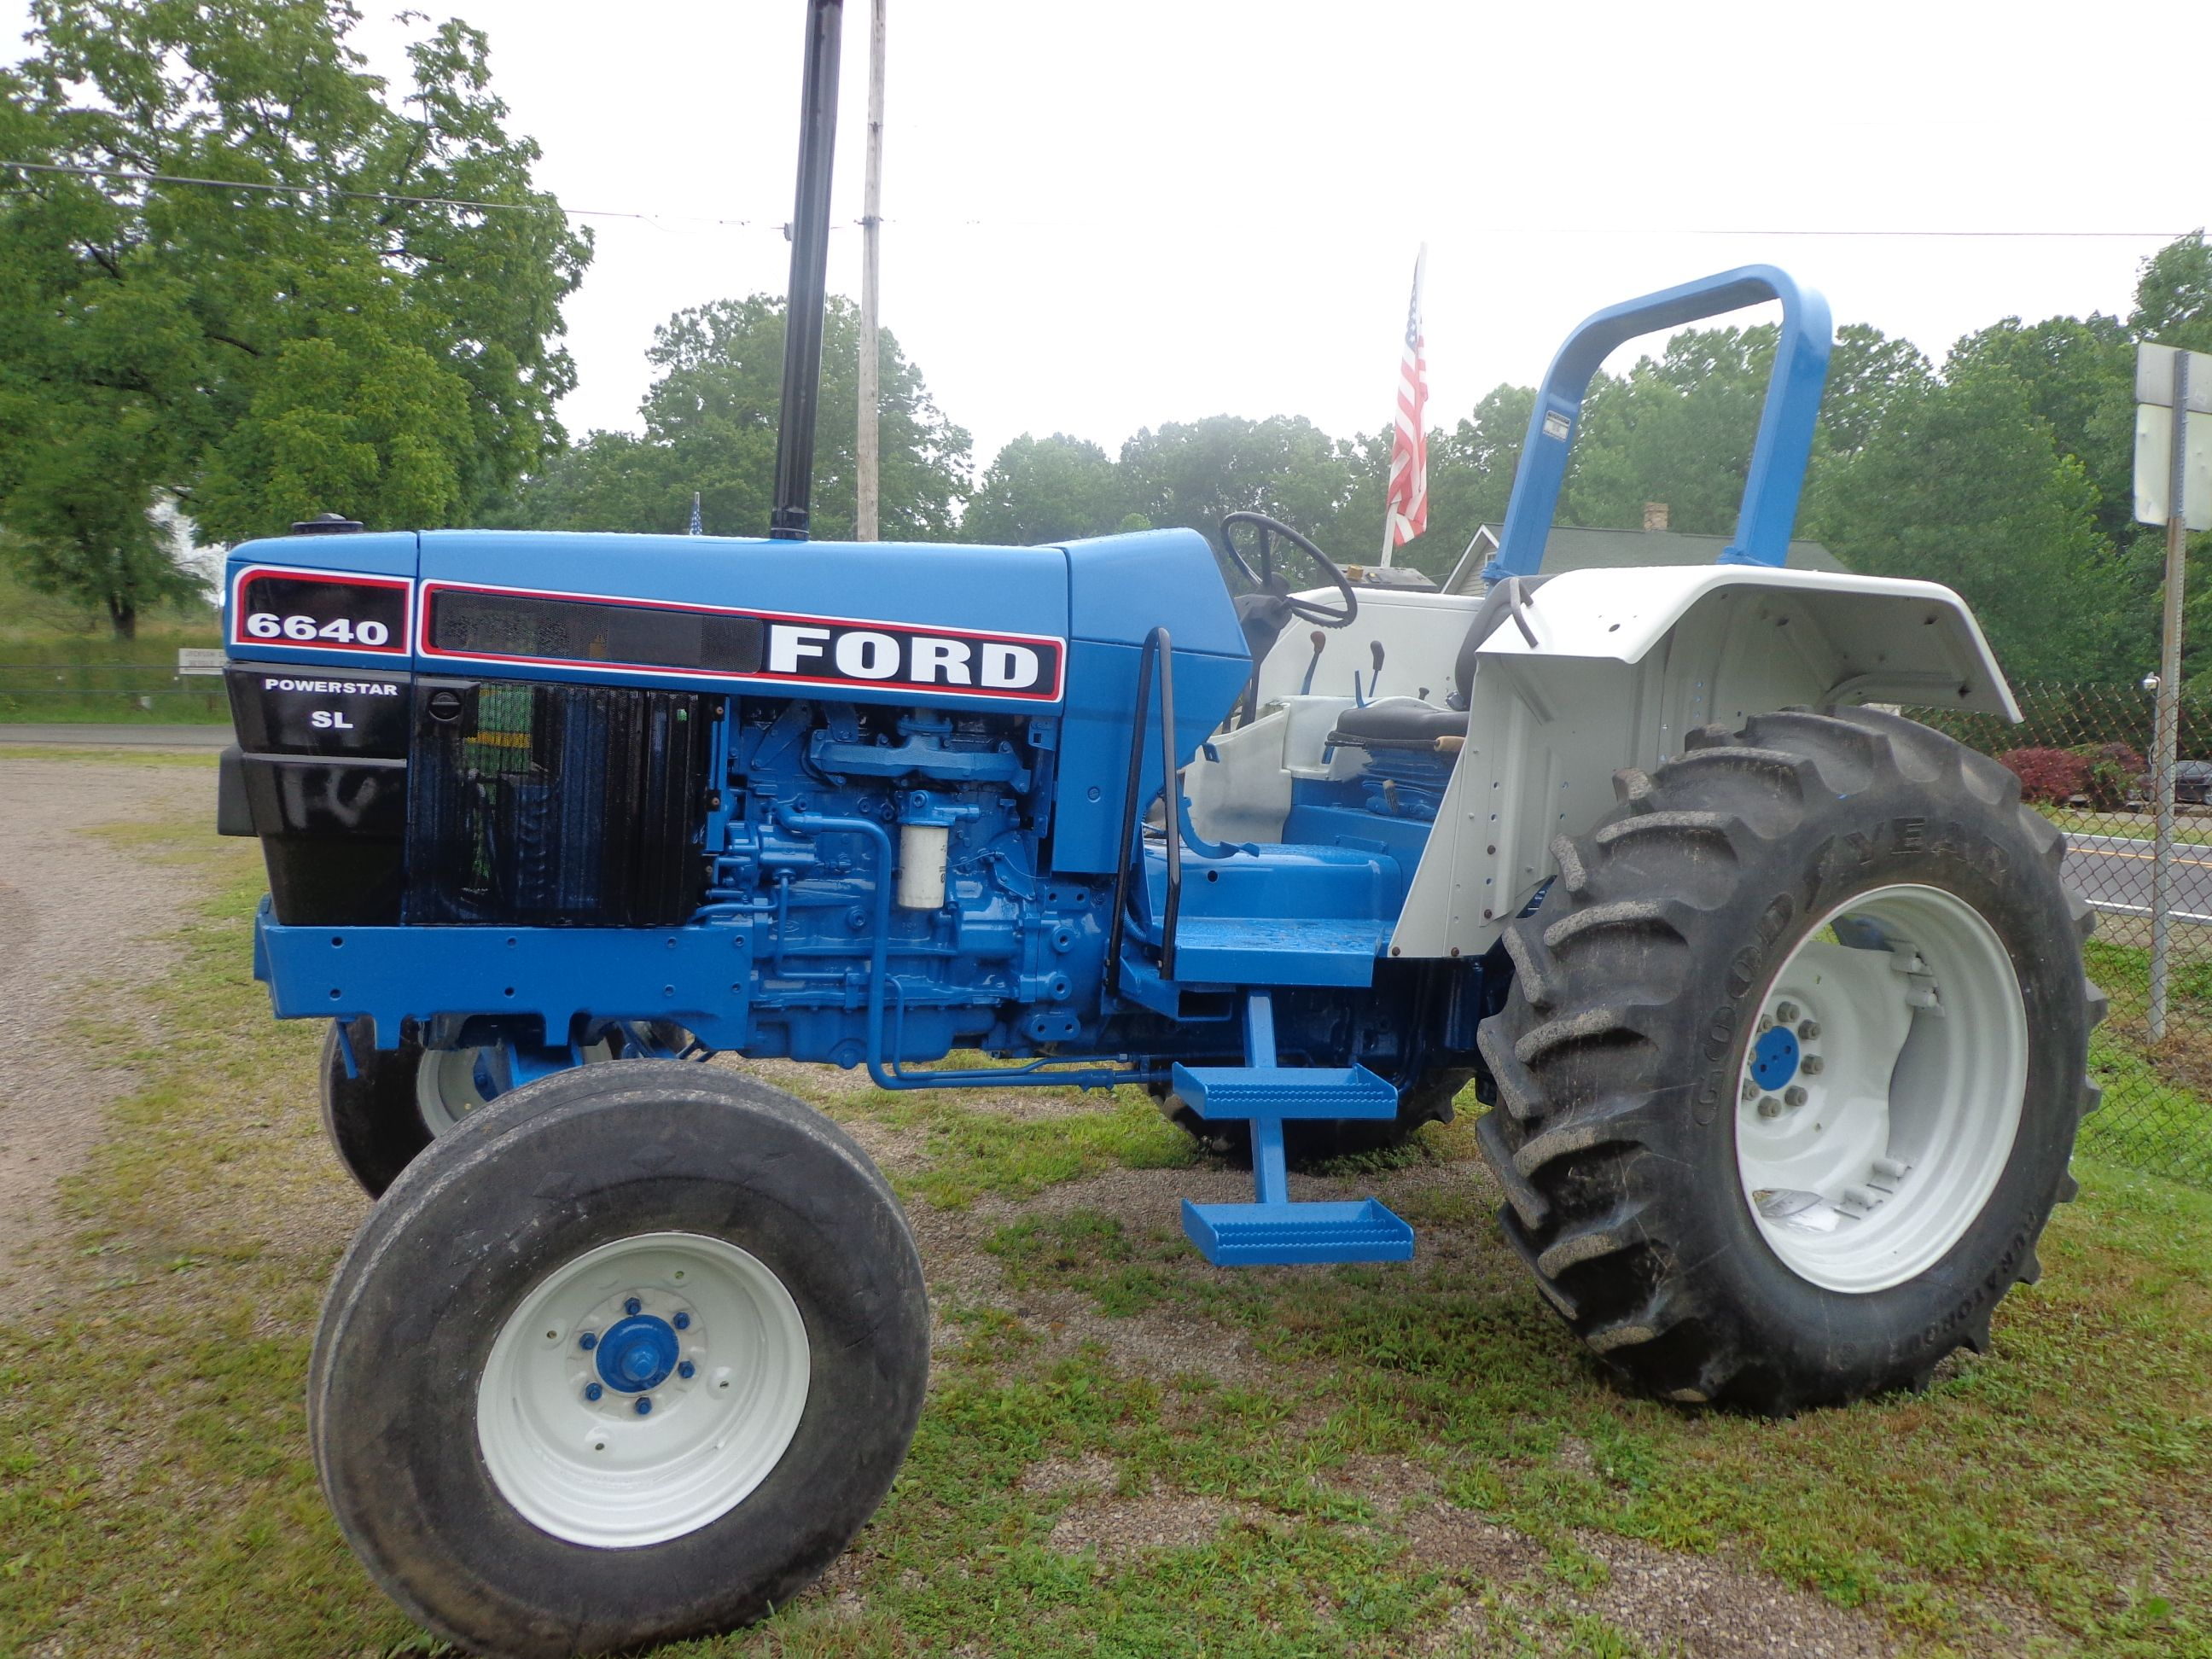 Ford 6640 tractor google search